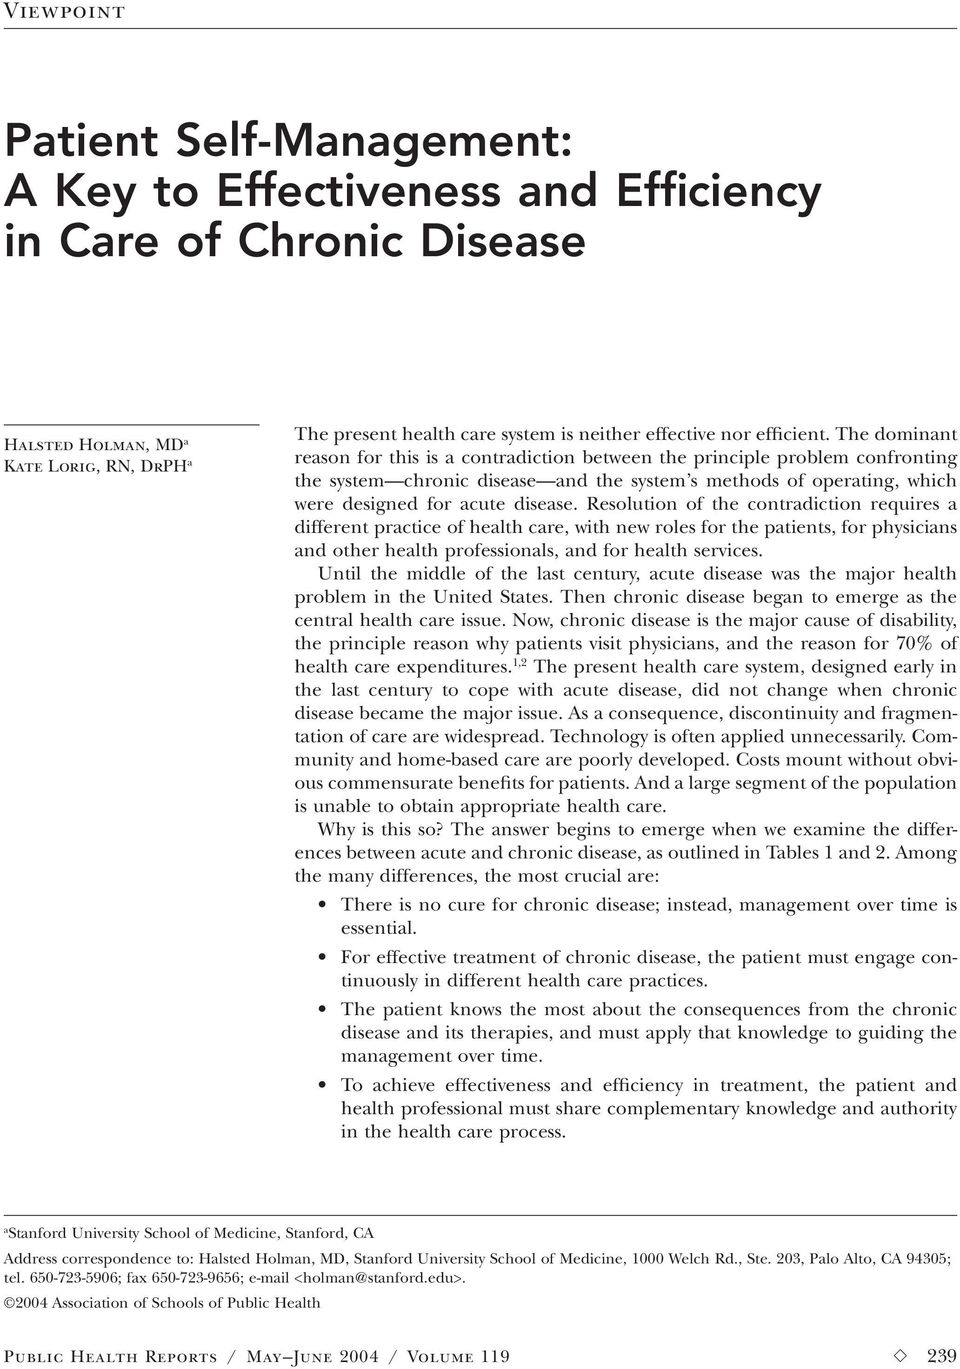 The dominant reason for this is a contradiction between the principle problem confronting the system chronic disease and the system s methods of operating, which were designed for acute disease.